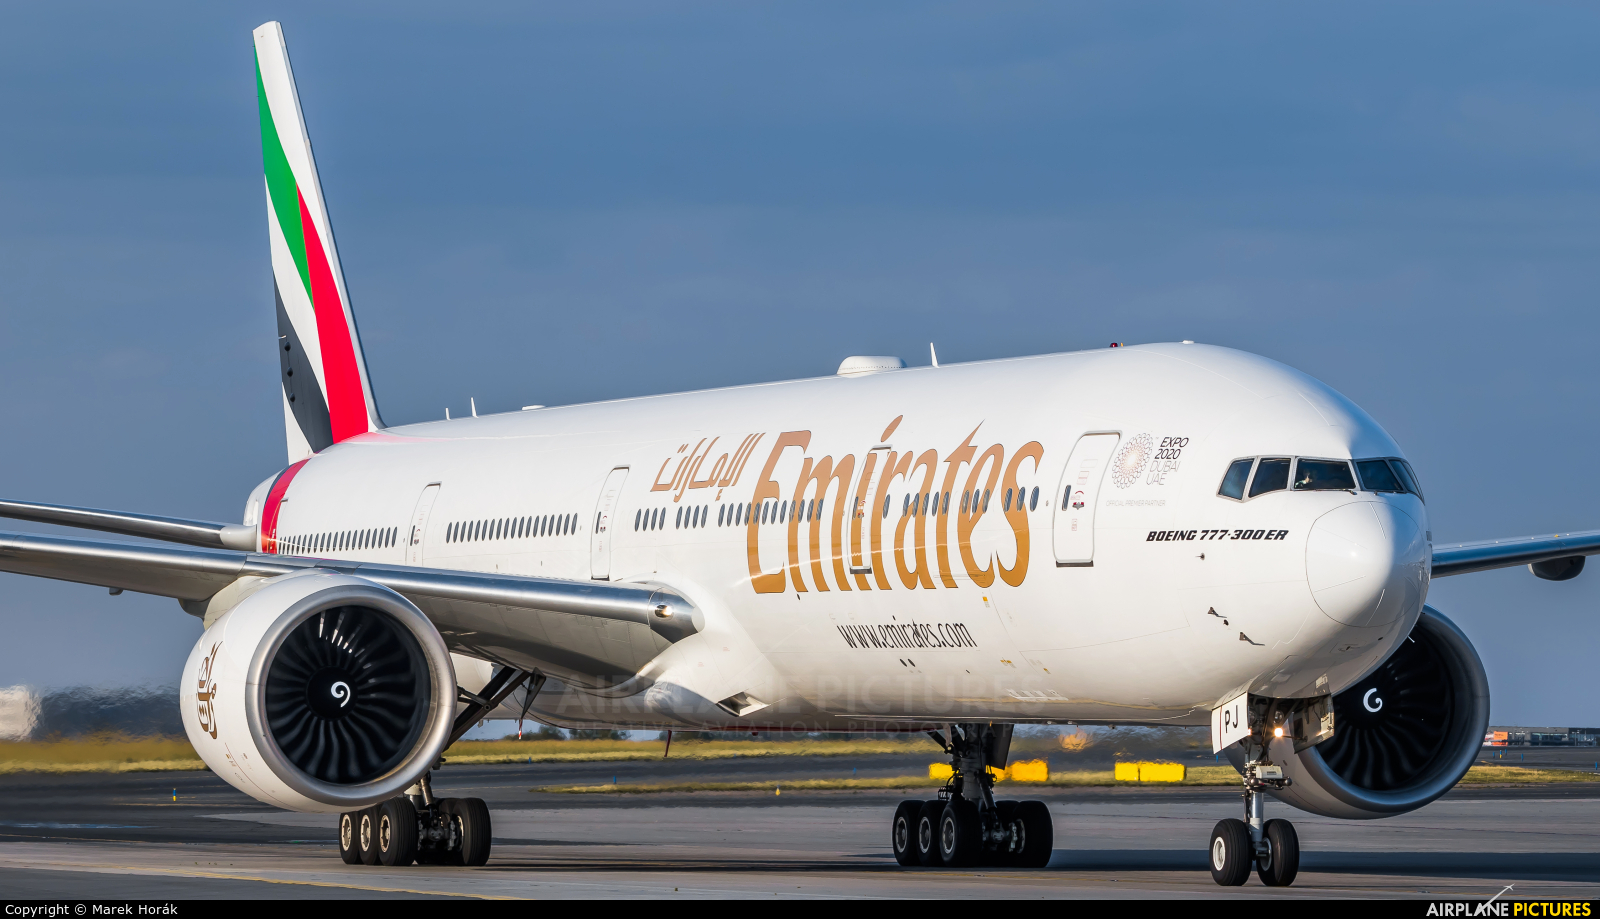 Emirates Airlines A6-EPJ aircraft at Prague - Václav Havel